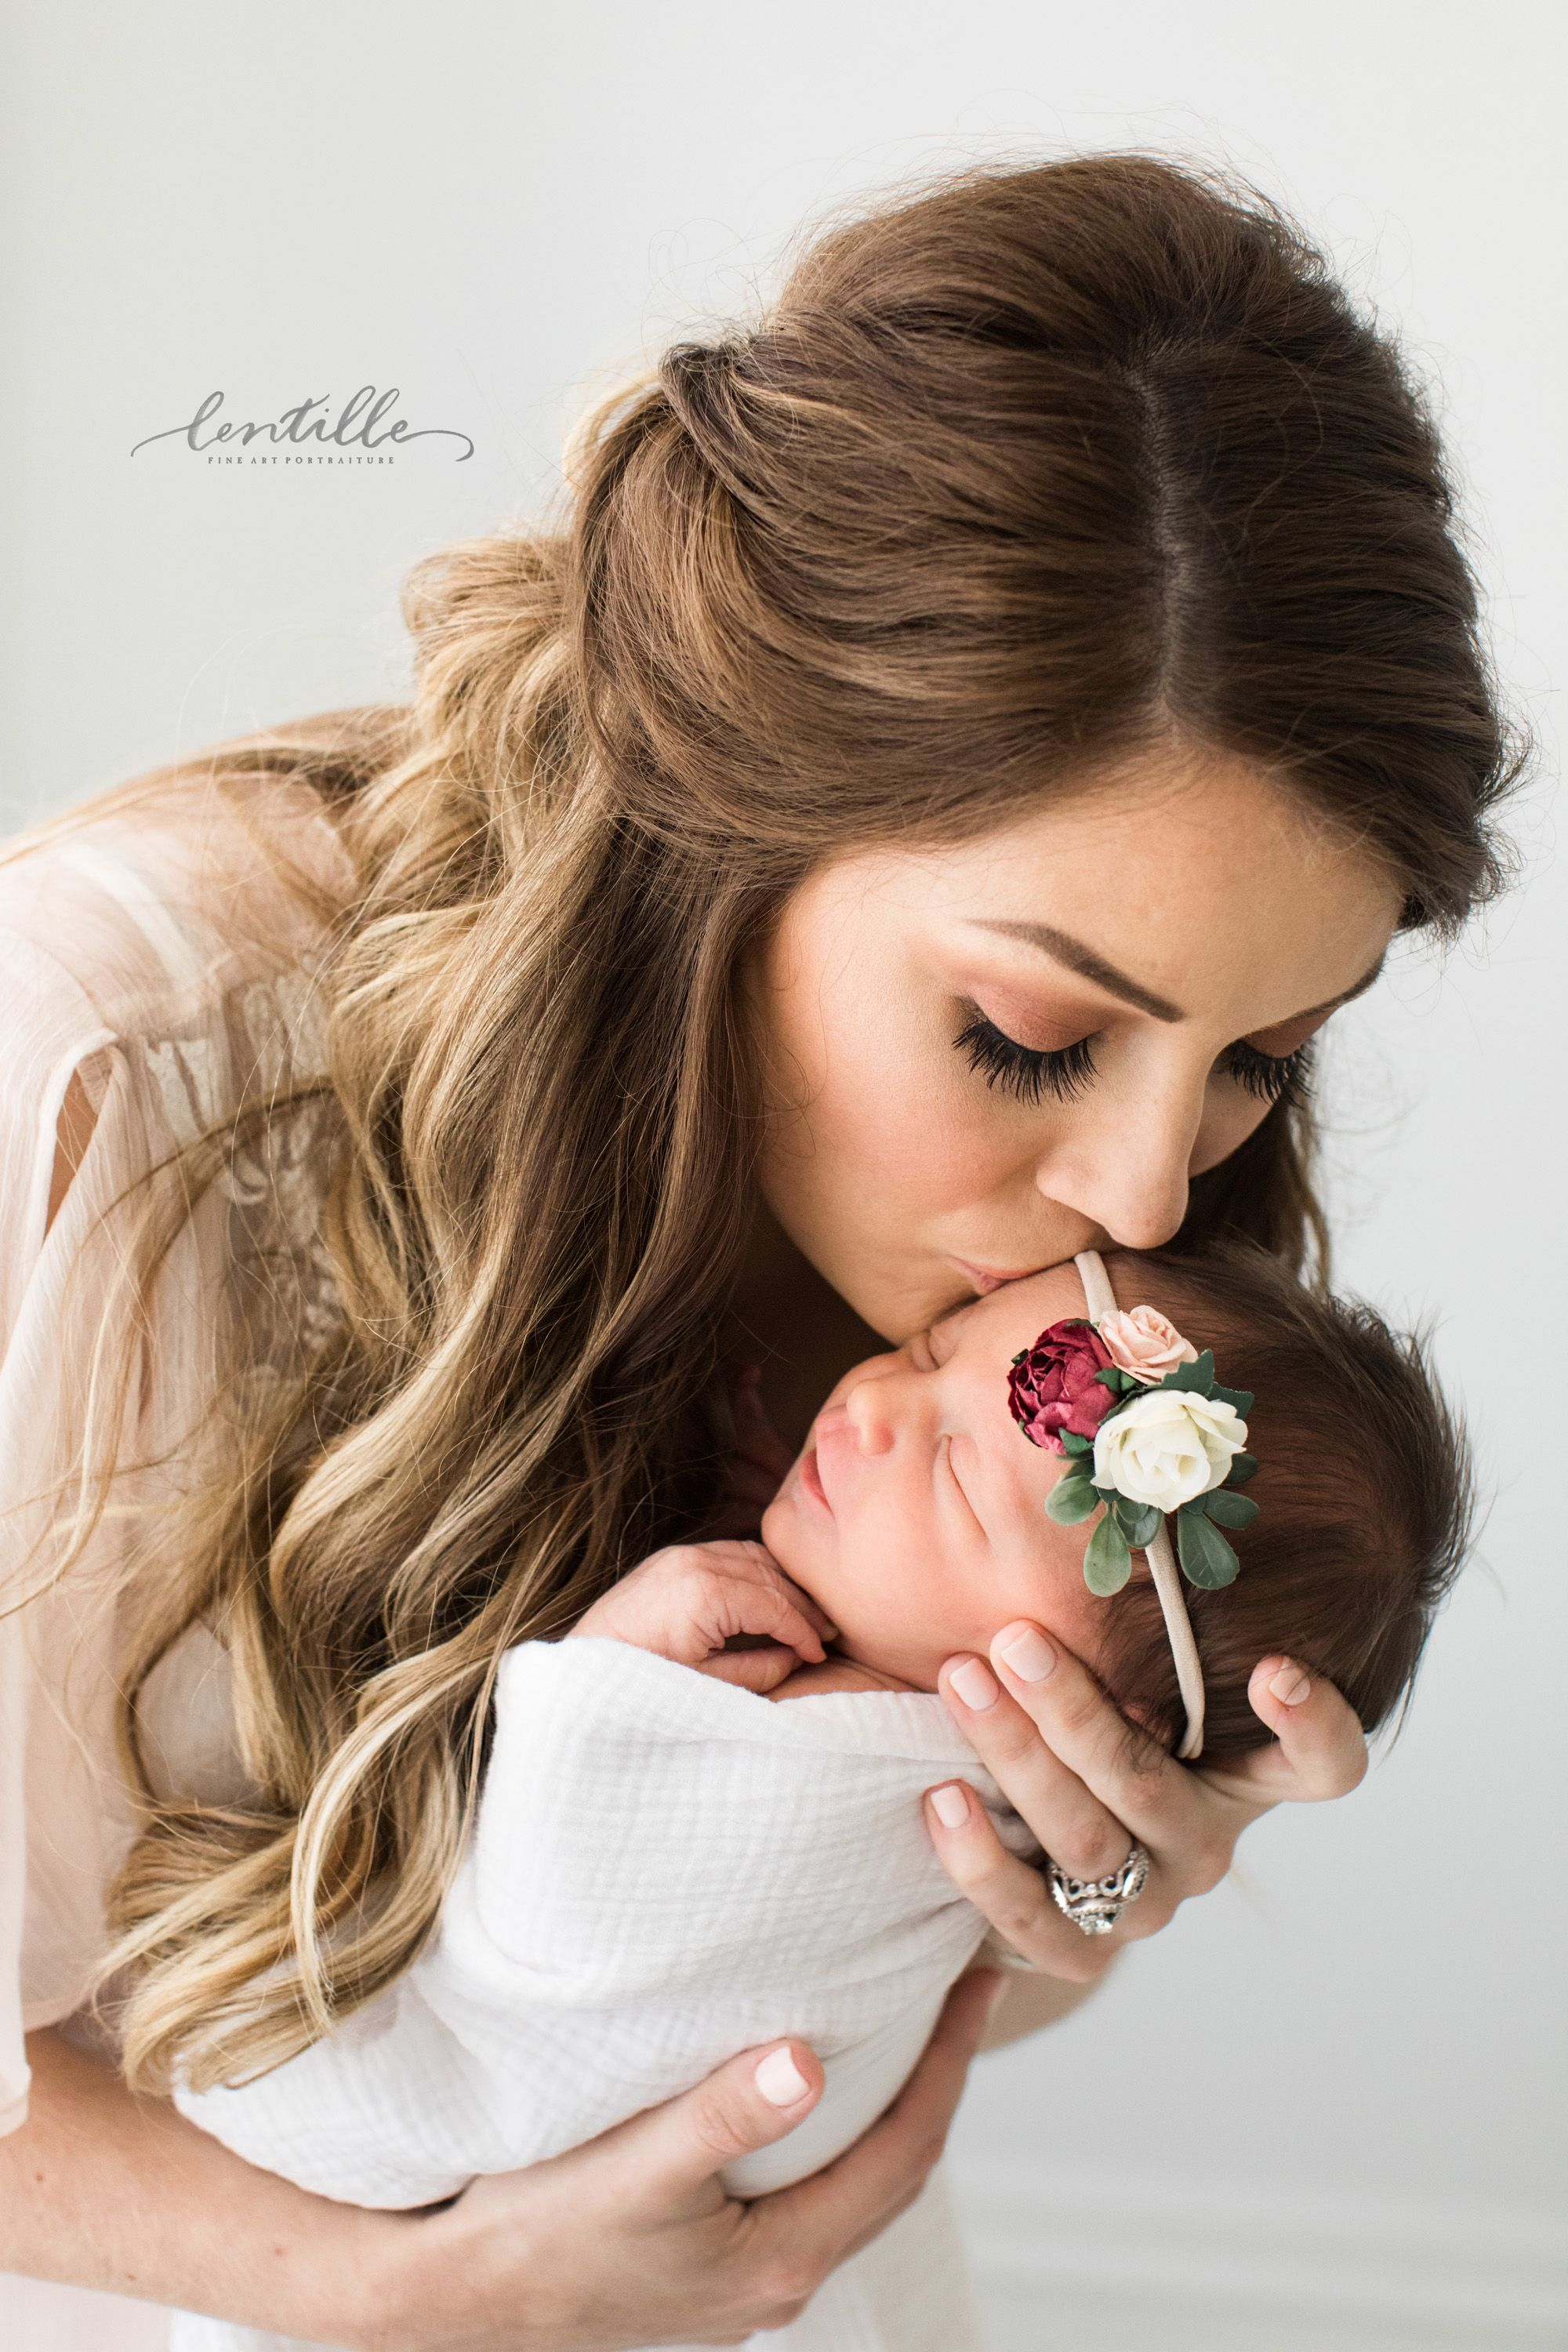 Lentille Photography specializes in Newborn Pictures in the Houston area and als...